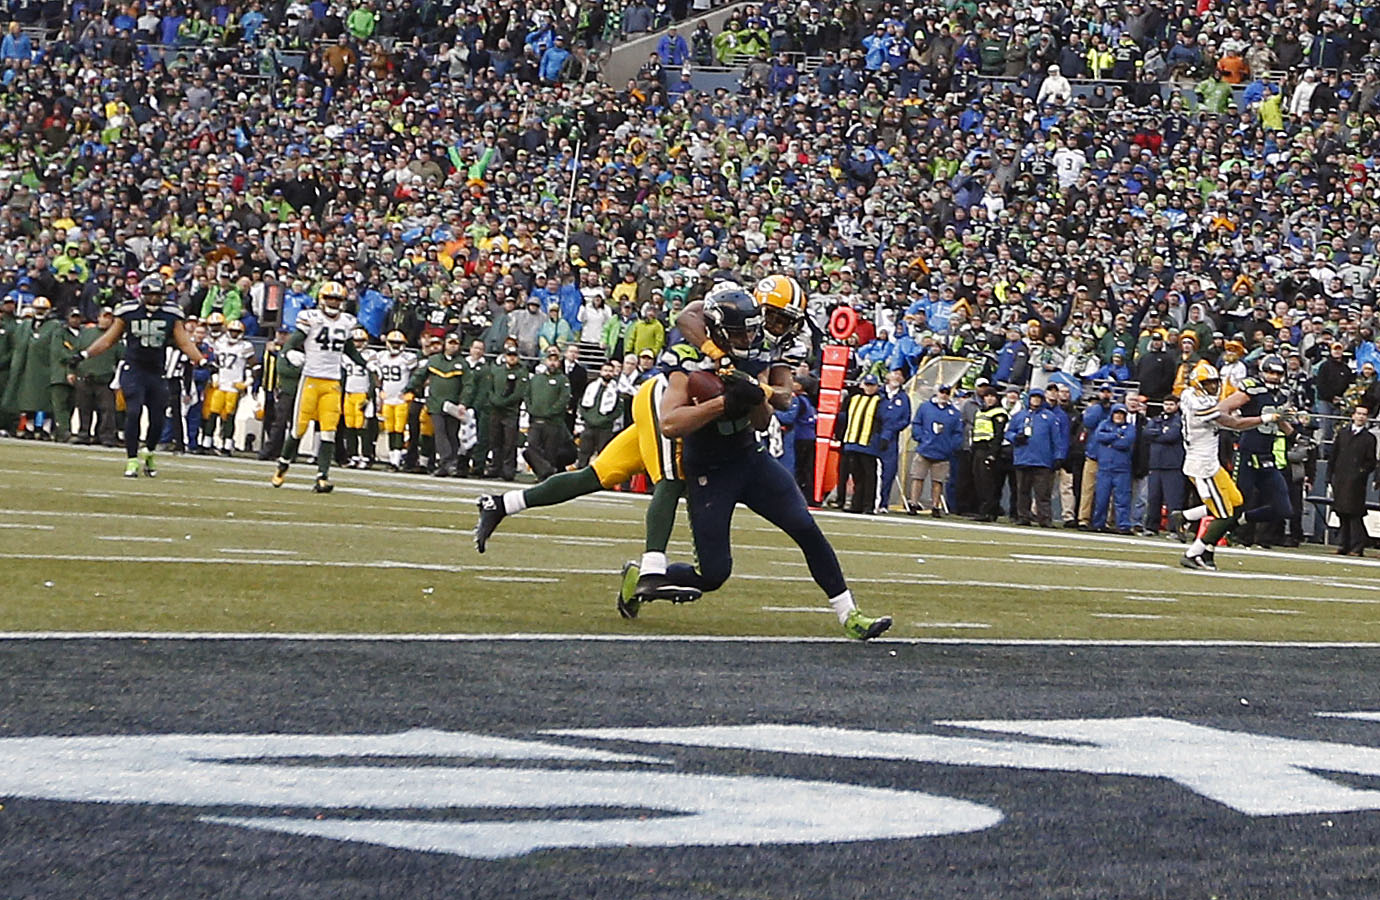 Seattle's Jermaine Kearse makes the game-winning catch in overtime. (Joe Nicholson, USA TODAY Sports)